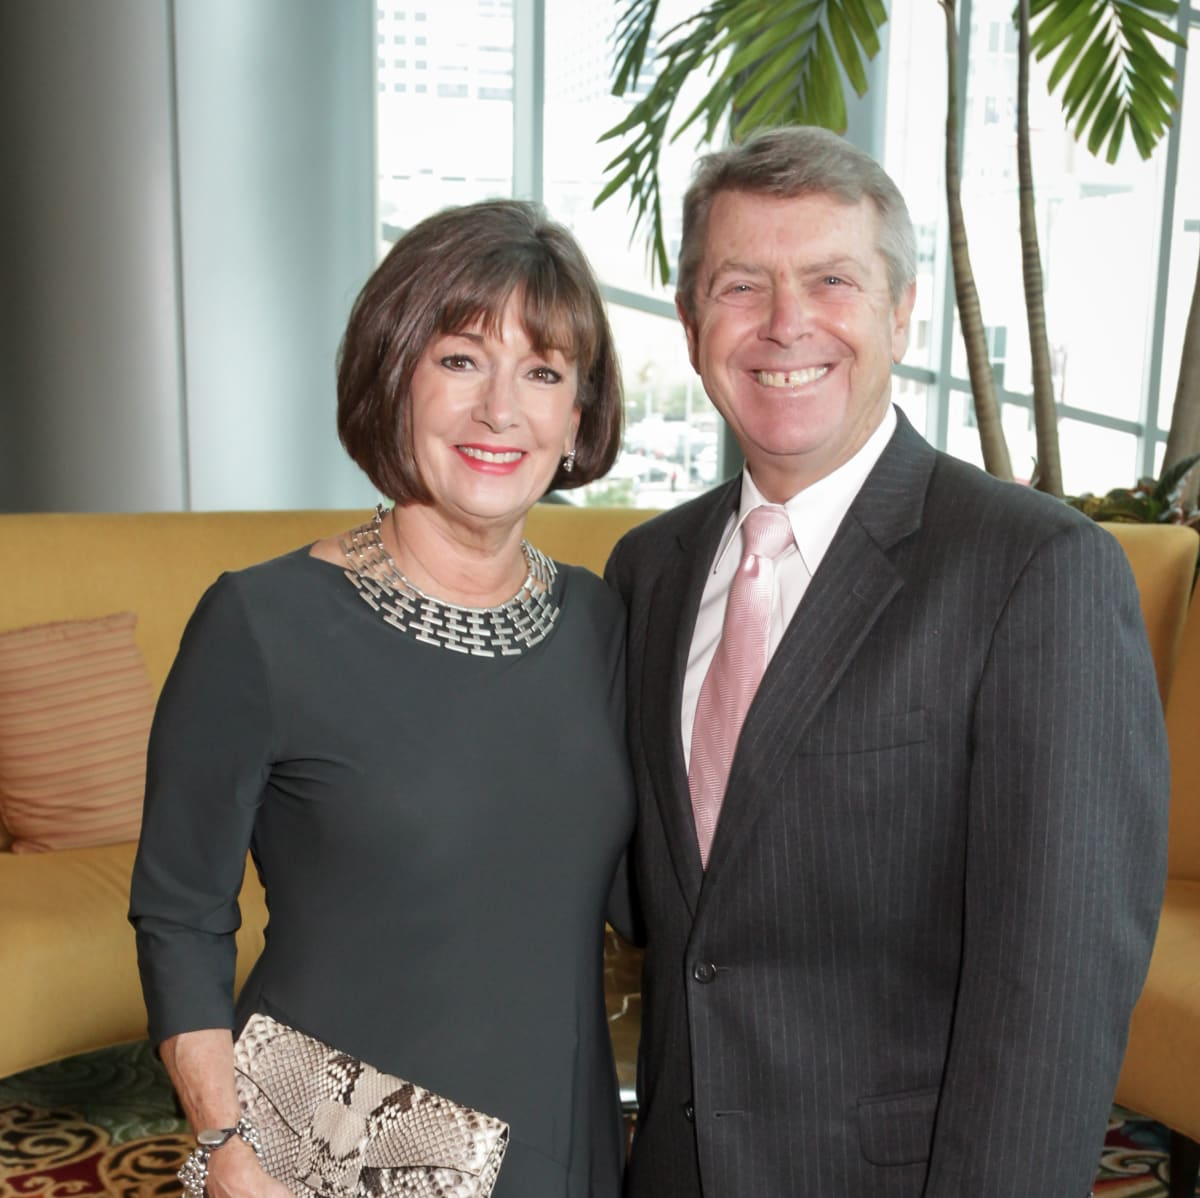 News, Shelby, Salvation Army luncheon, Nov. 2015, Cathy Cleary, Joe Cleary